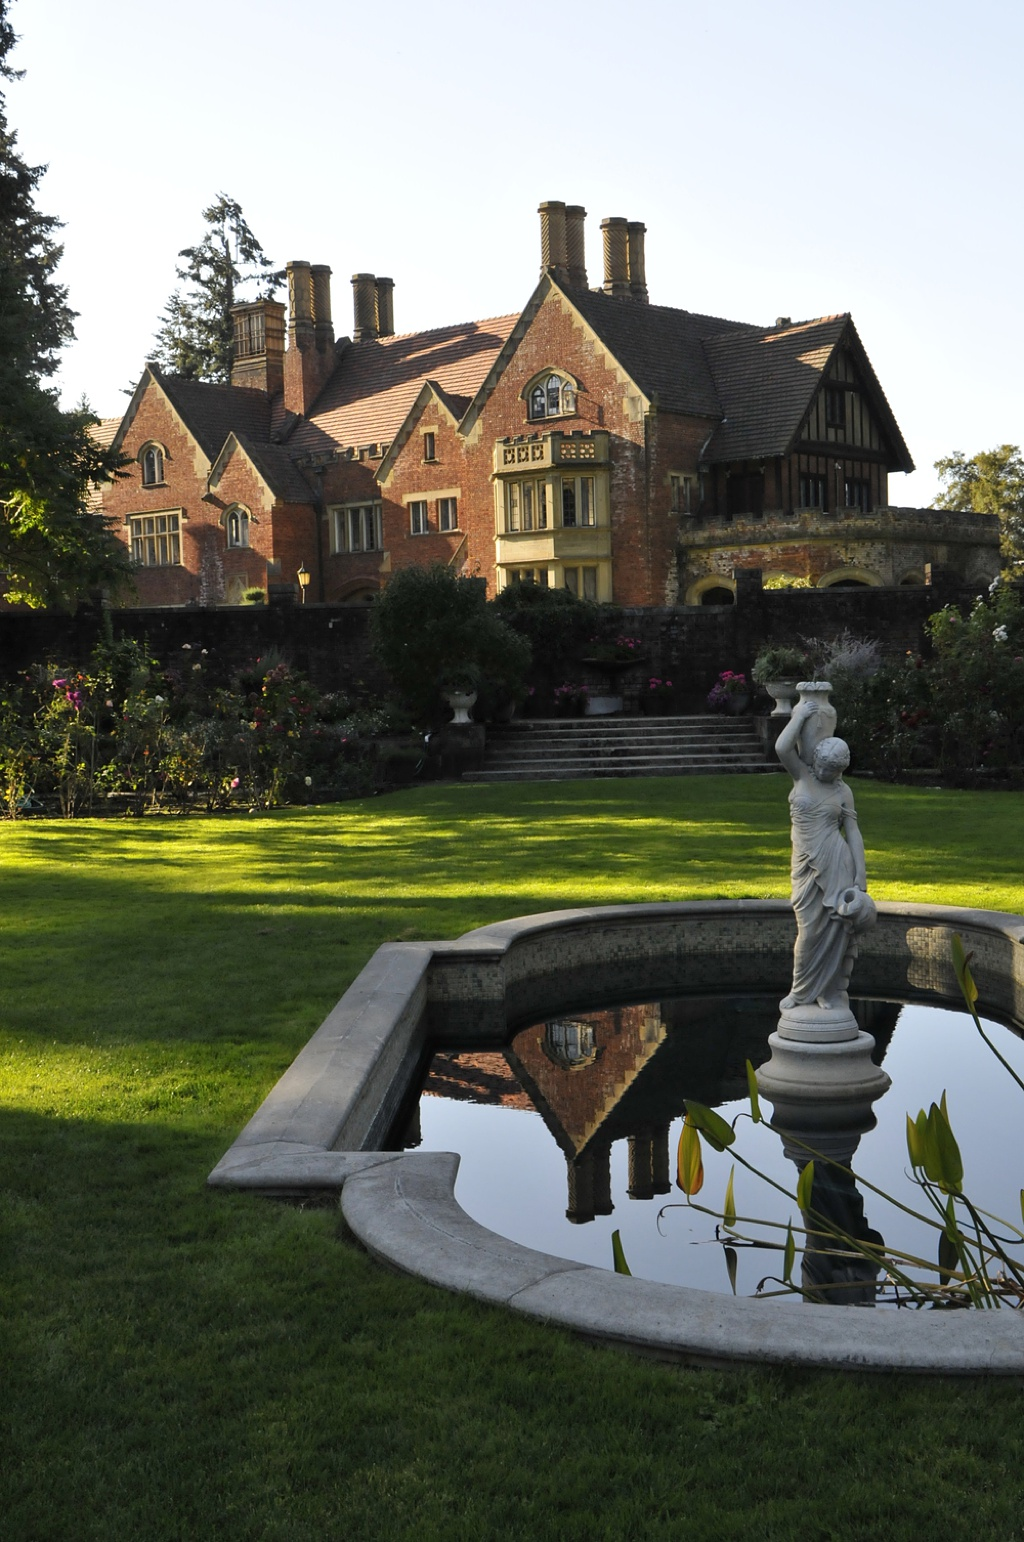 An image of Thornewood Castle from the outdoor fountain